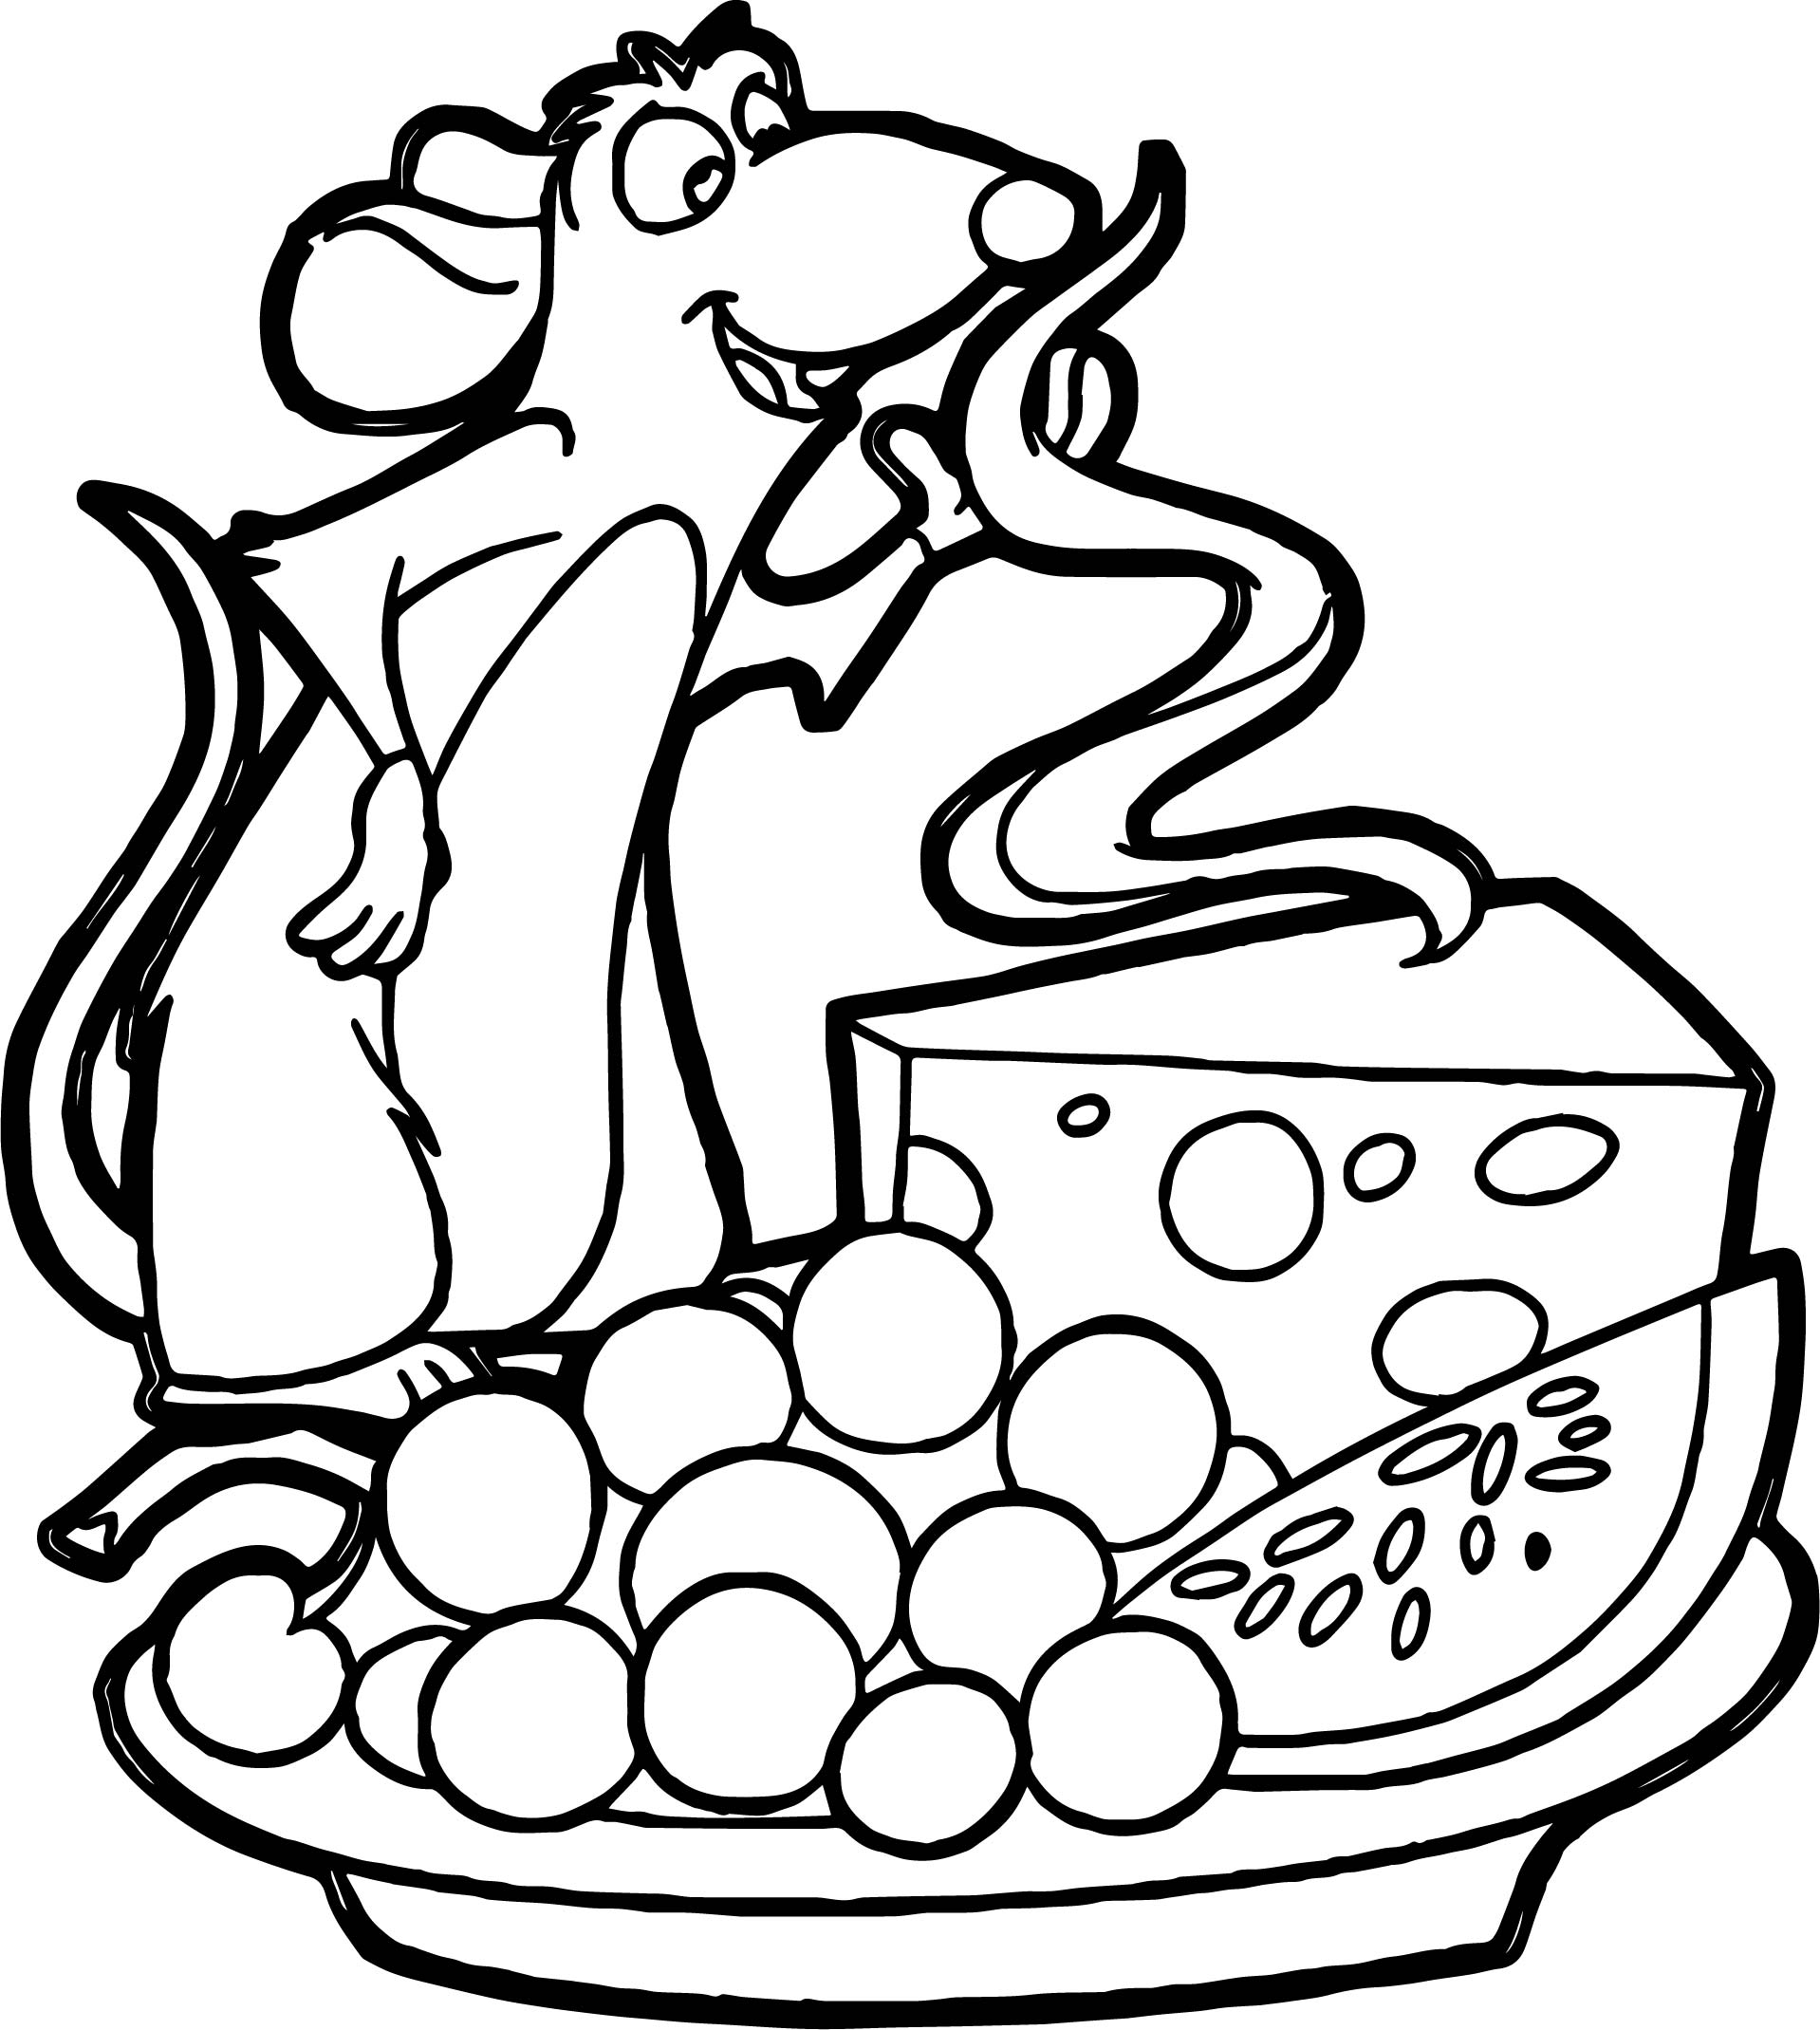 Ratatouille Cheese Grape Watermelon Coloring Page | Wecoloringpage